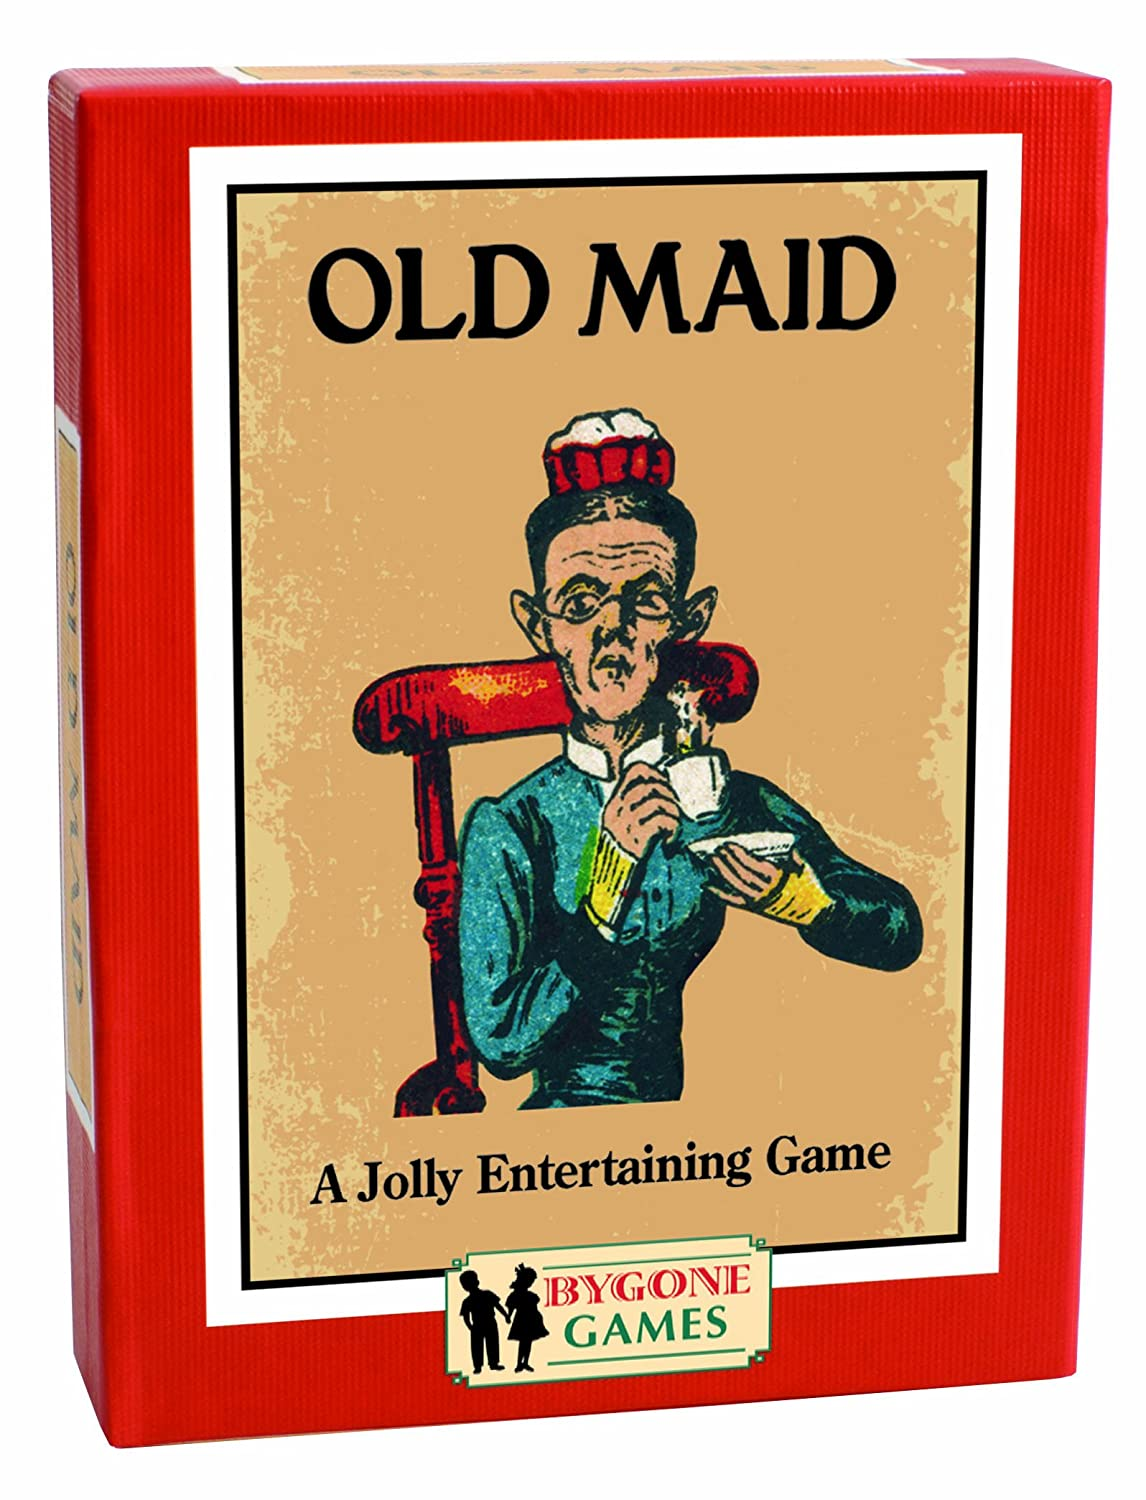 Cheatwell Games Bygone Days Old Maid Card Games Cheatwell Gamees 1807 Fictional & Fantasy Characters